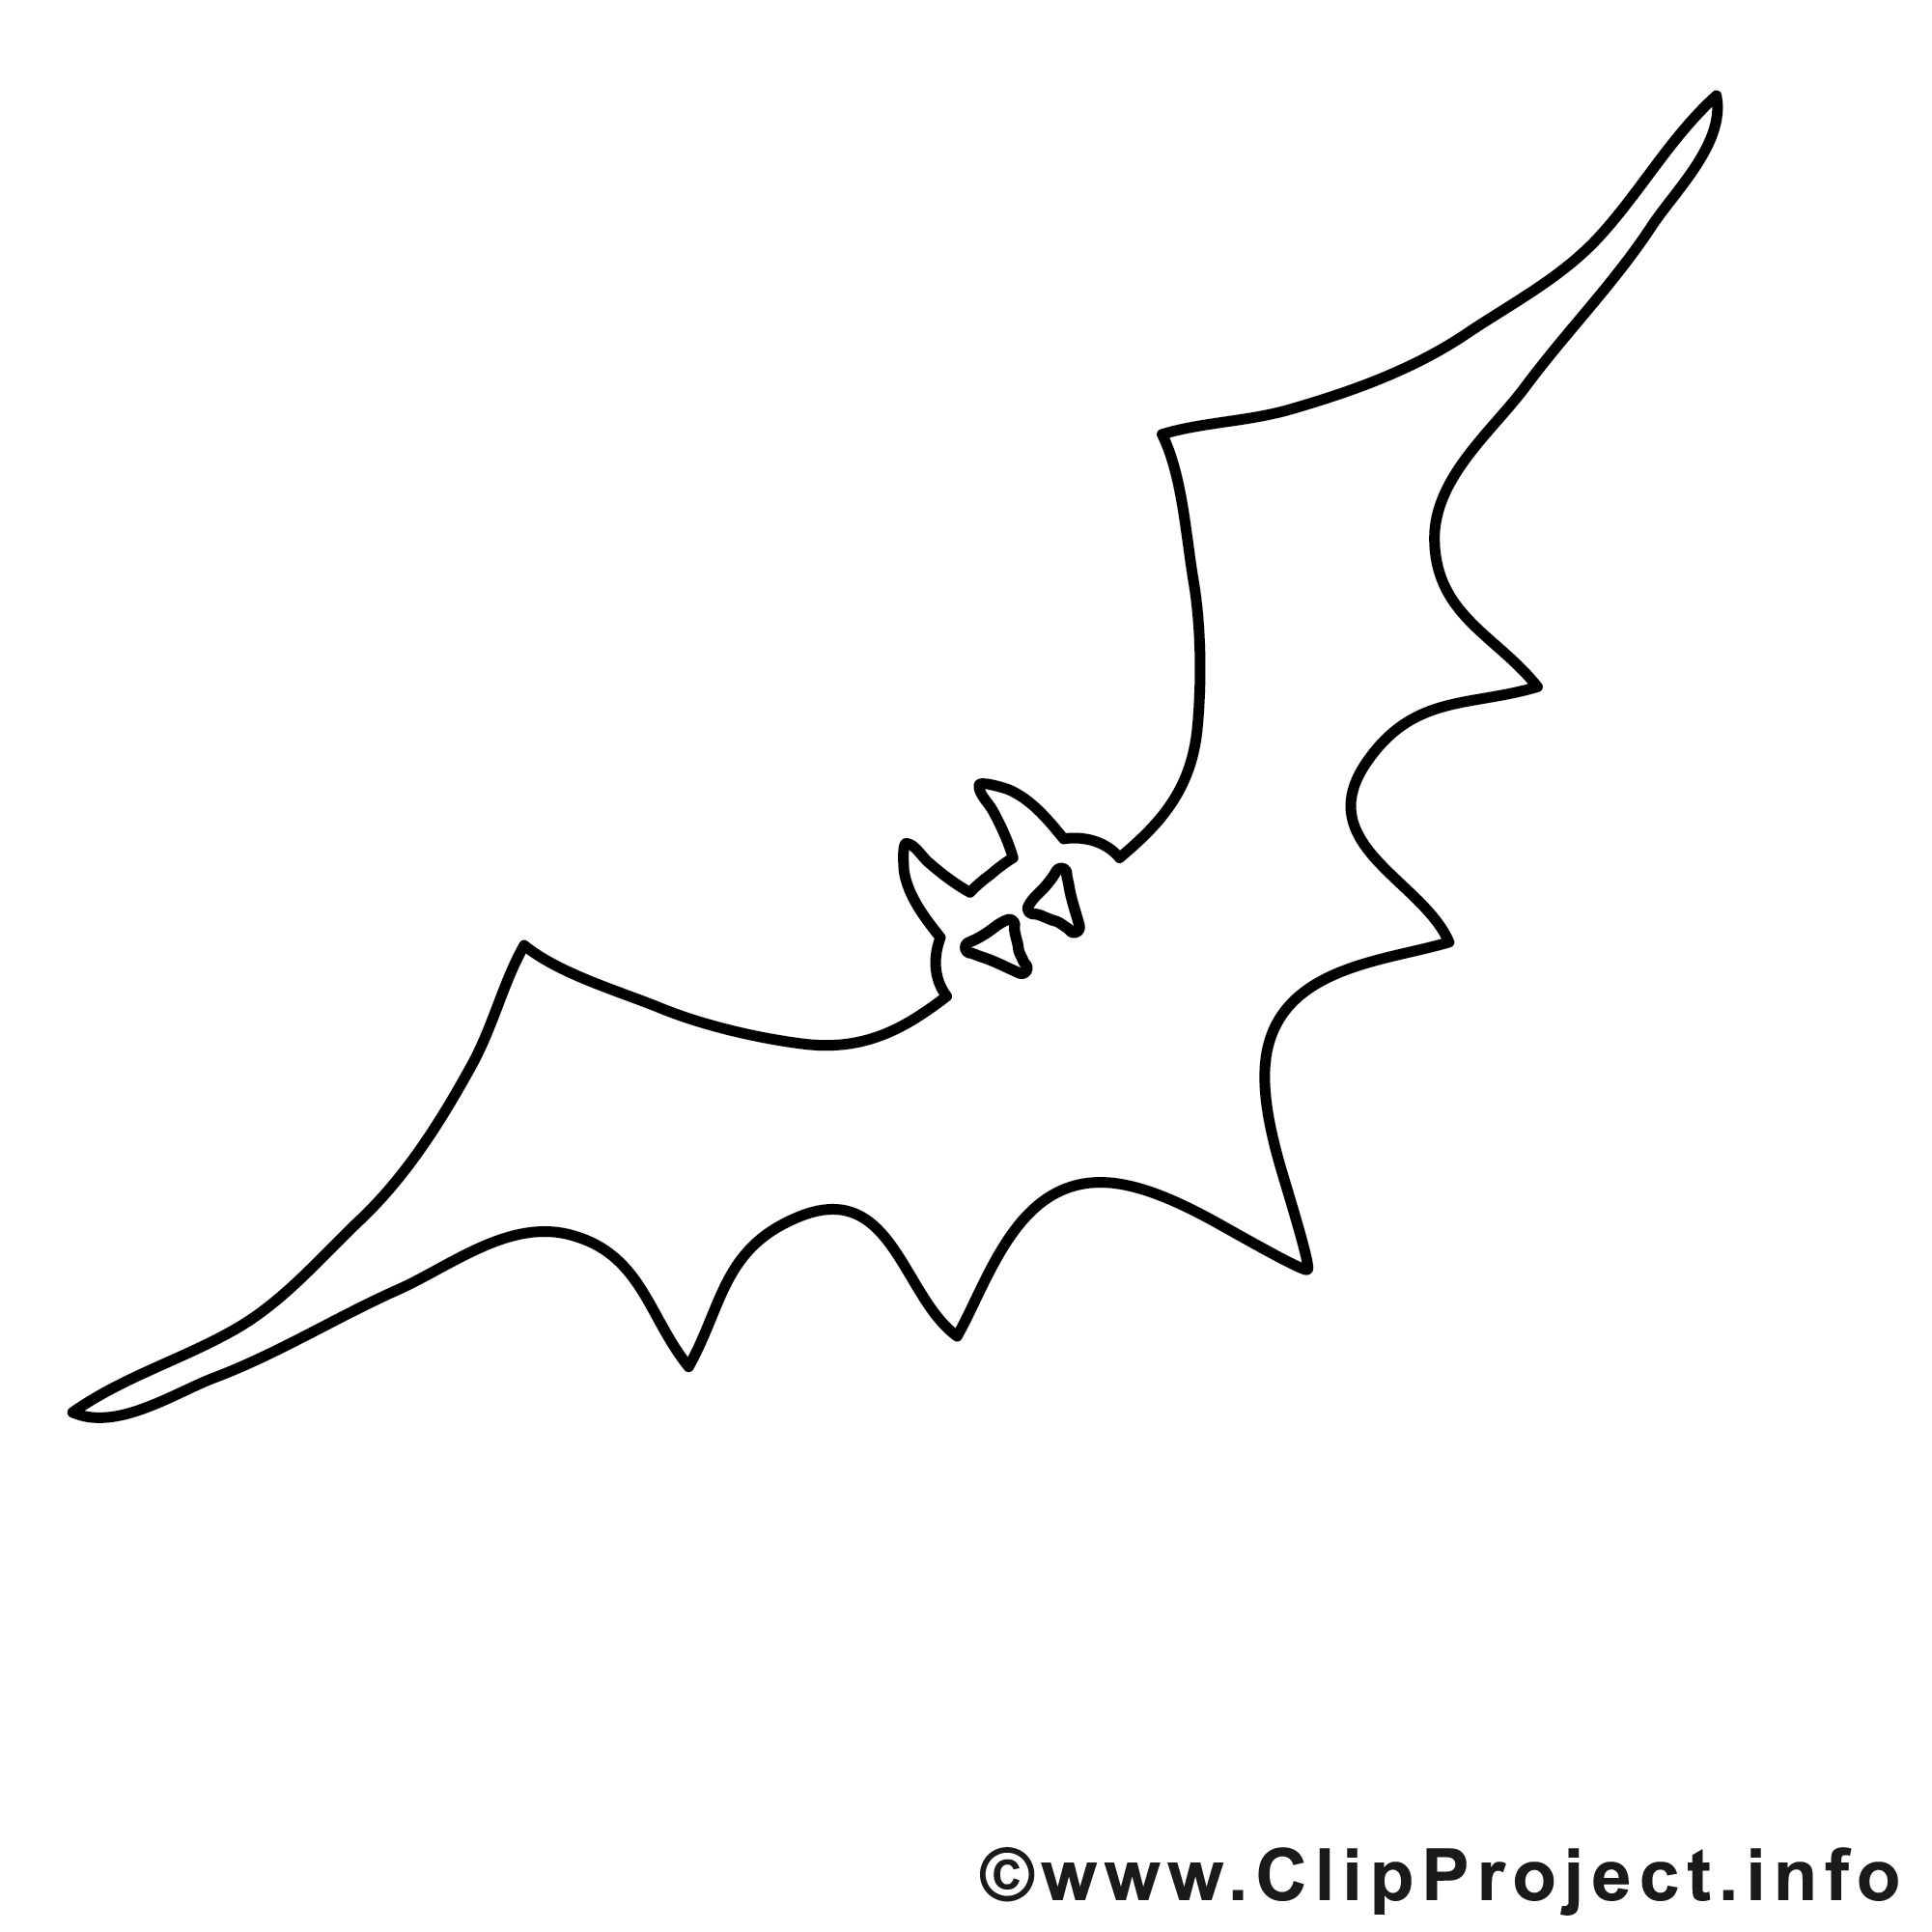 Halloween Ausmalbilder Fledermaus 07 Home Decor Decals Coloring Pages Pencil Drawings